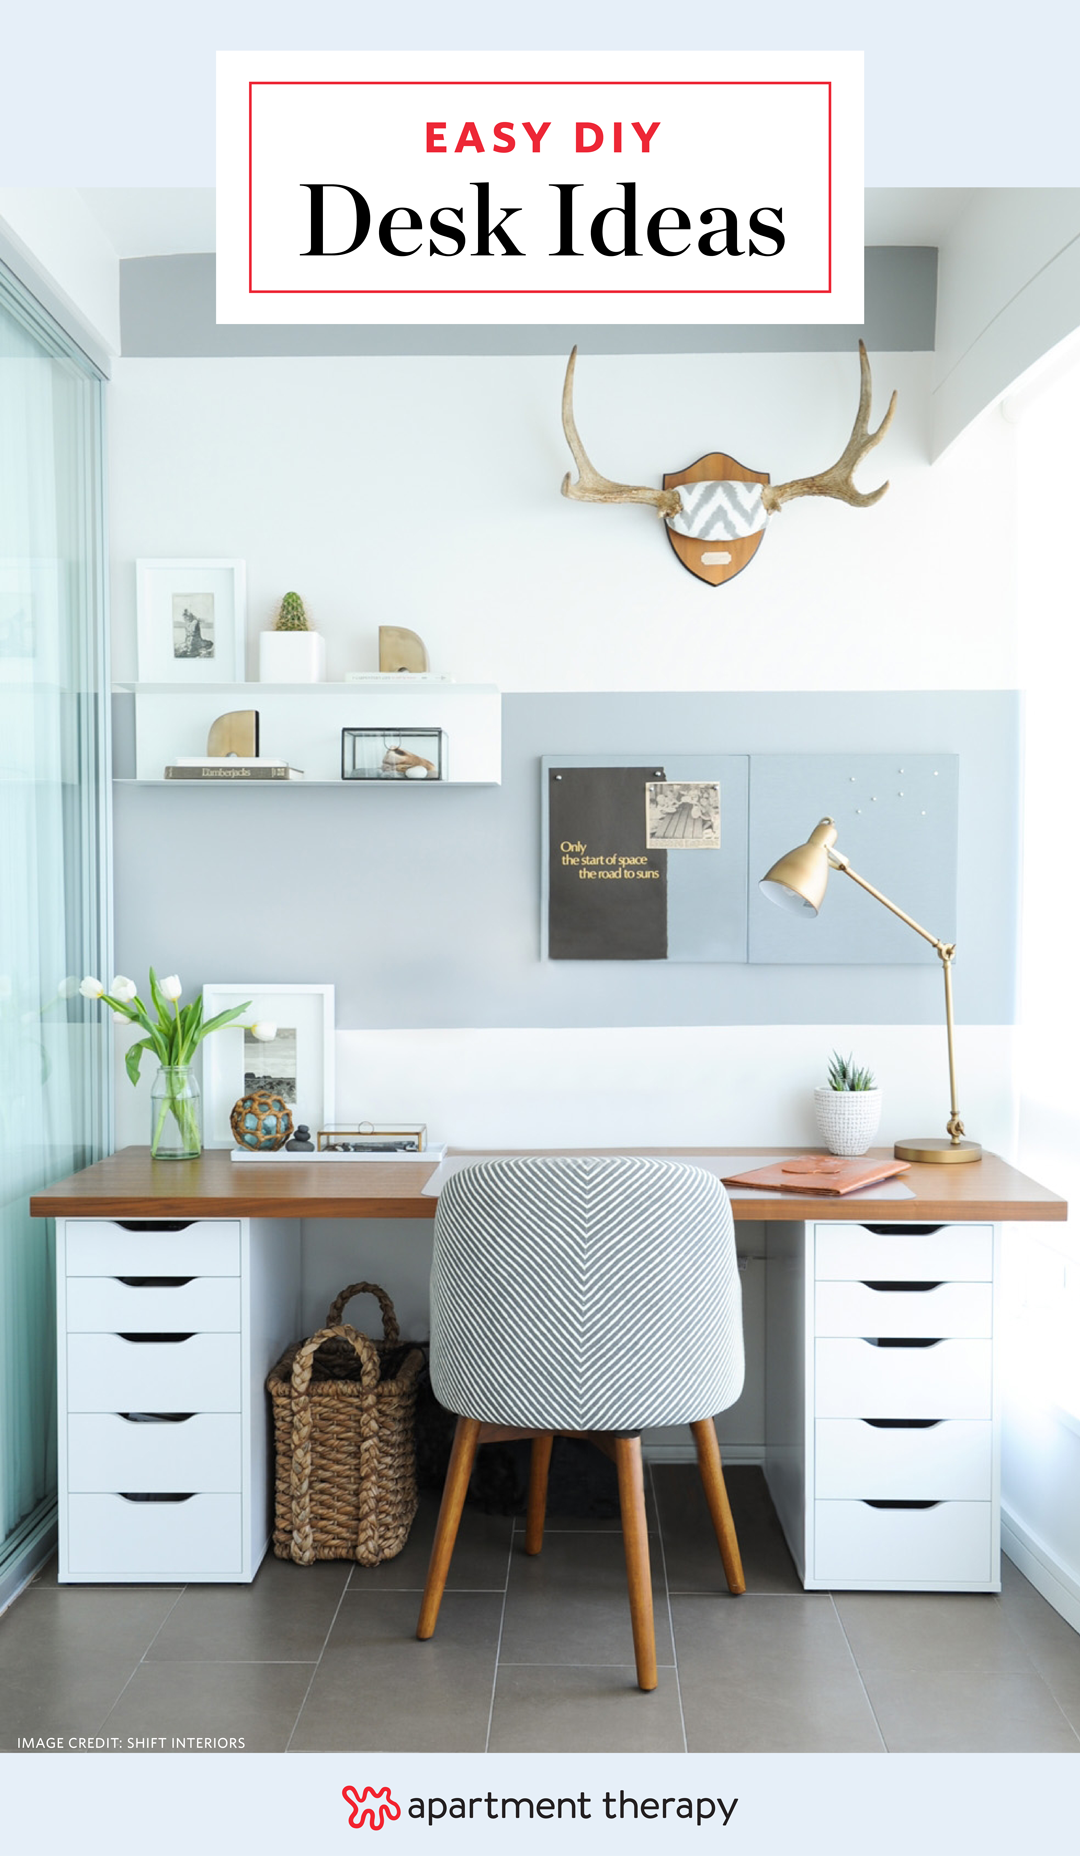 Diy Desks You Can Make In Less Than A Minute Seriously With